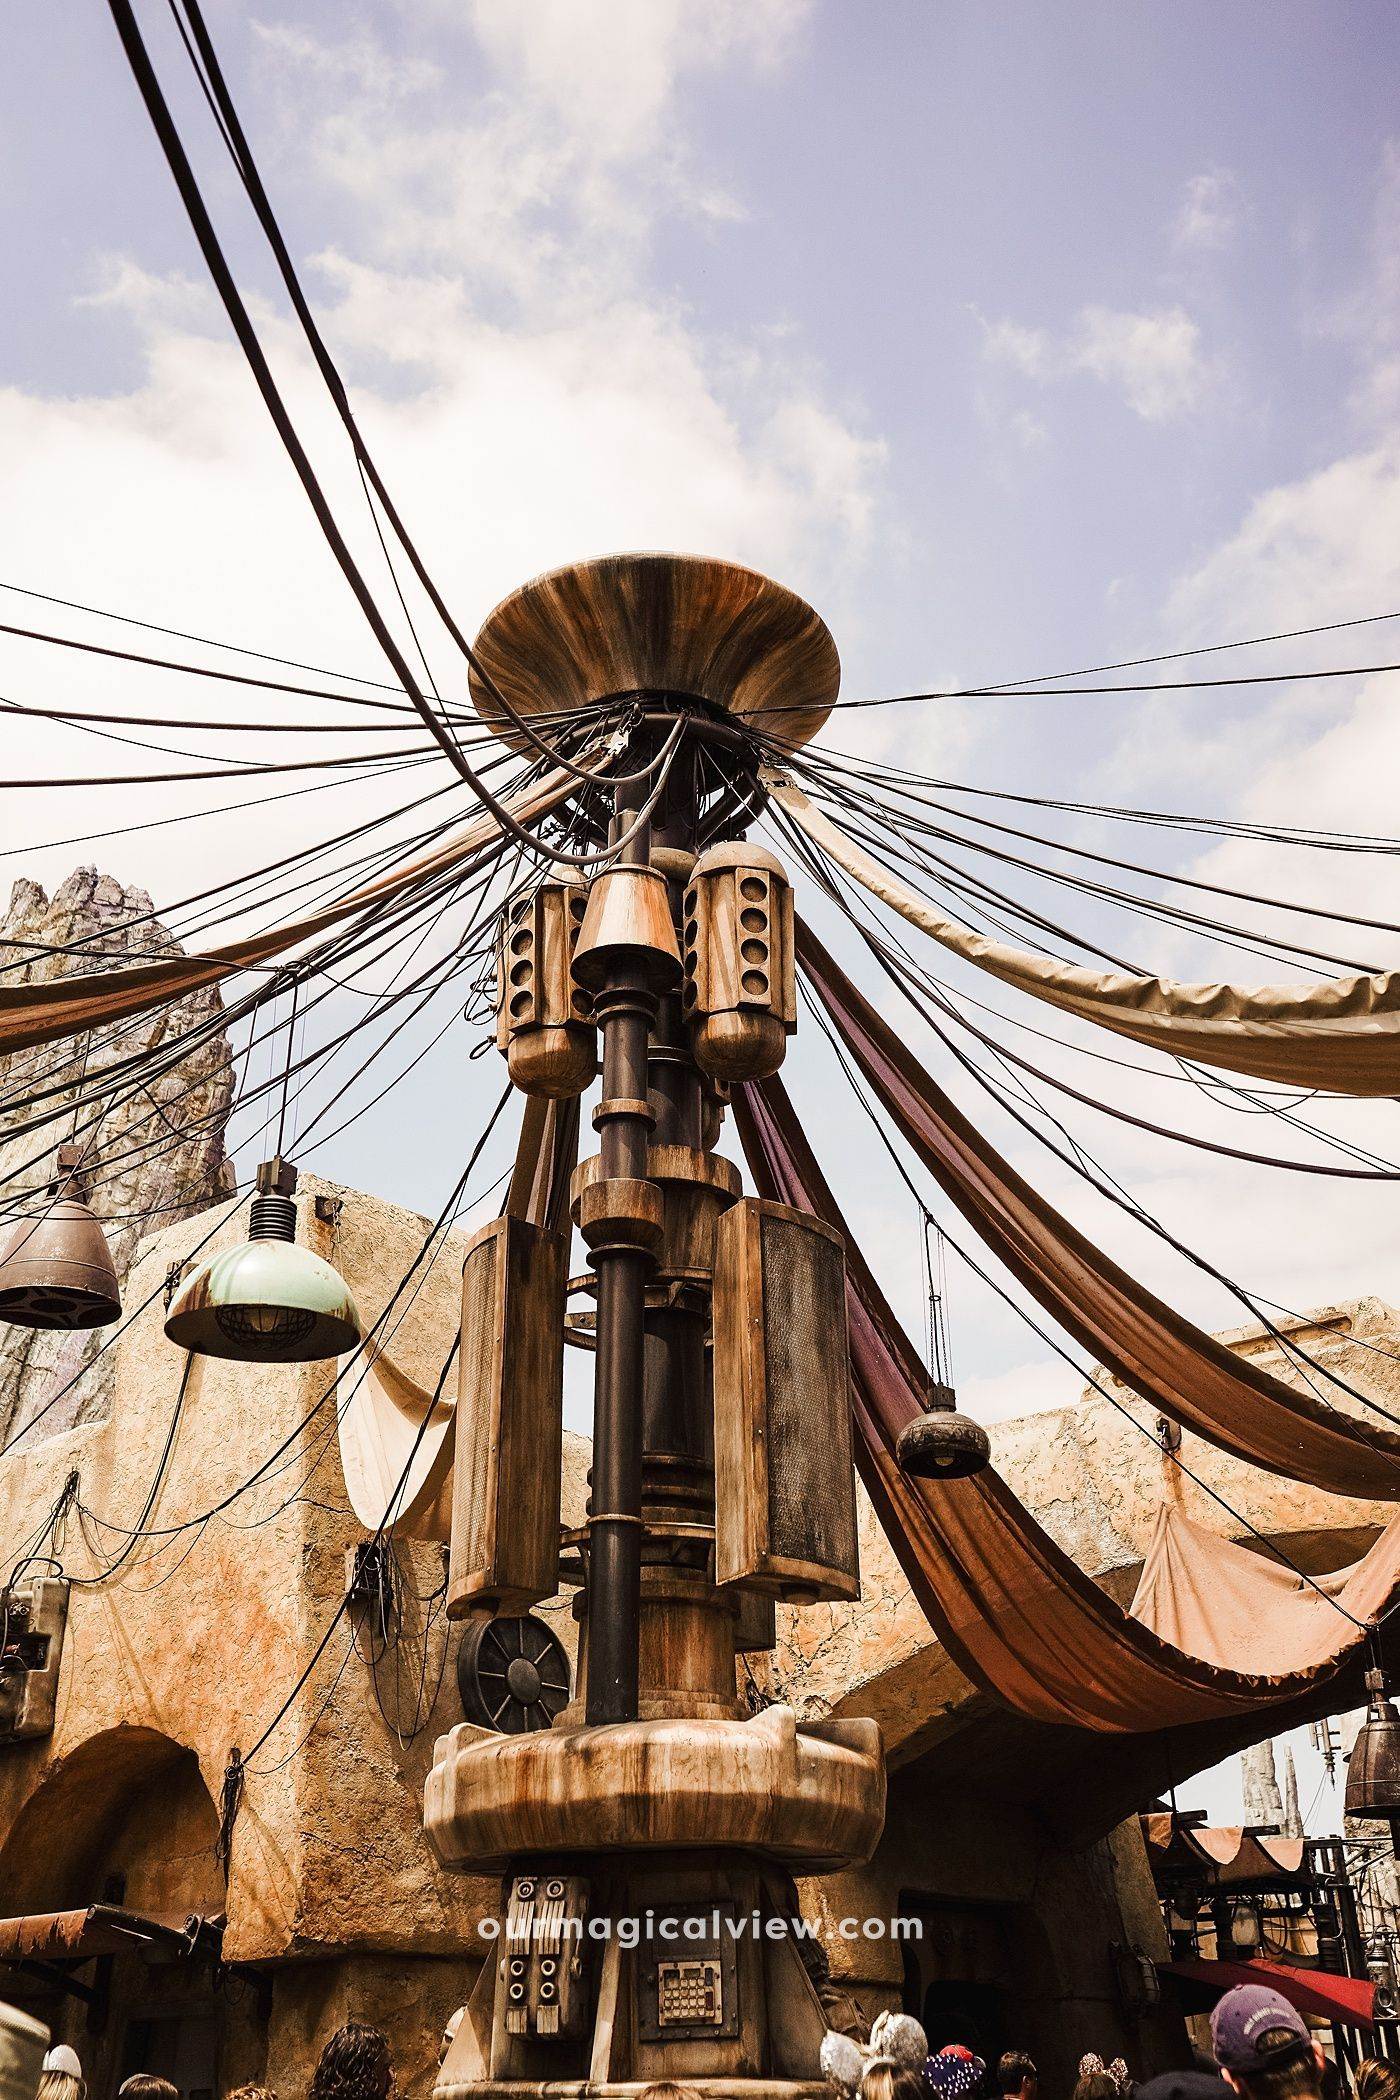 Our Review Of Star Wars Galaxy S Edge In Disneyland Starwars Galaxysedge Disneyland Disneyland Star Wars Star Wars Star Wars Theme